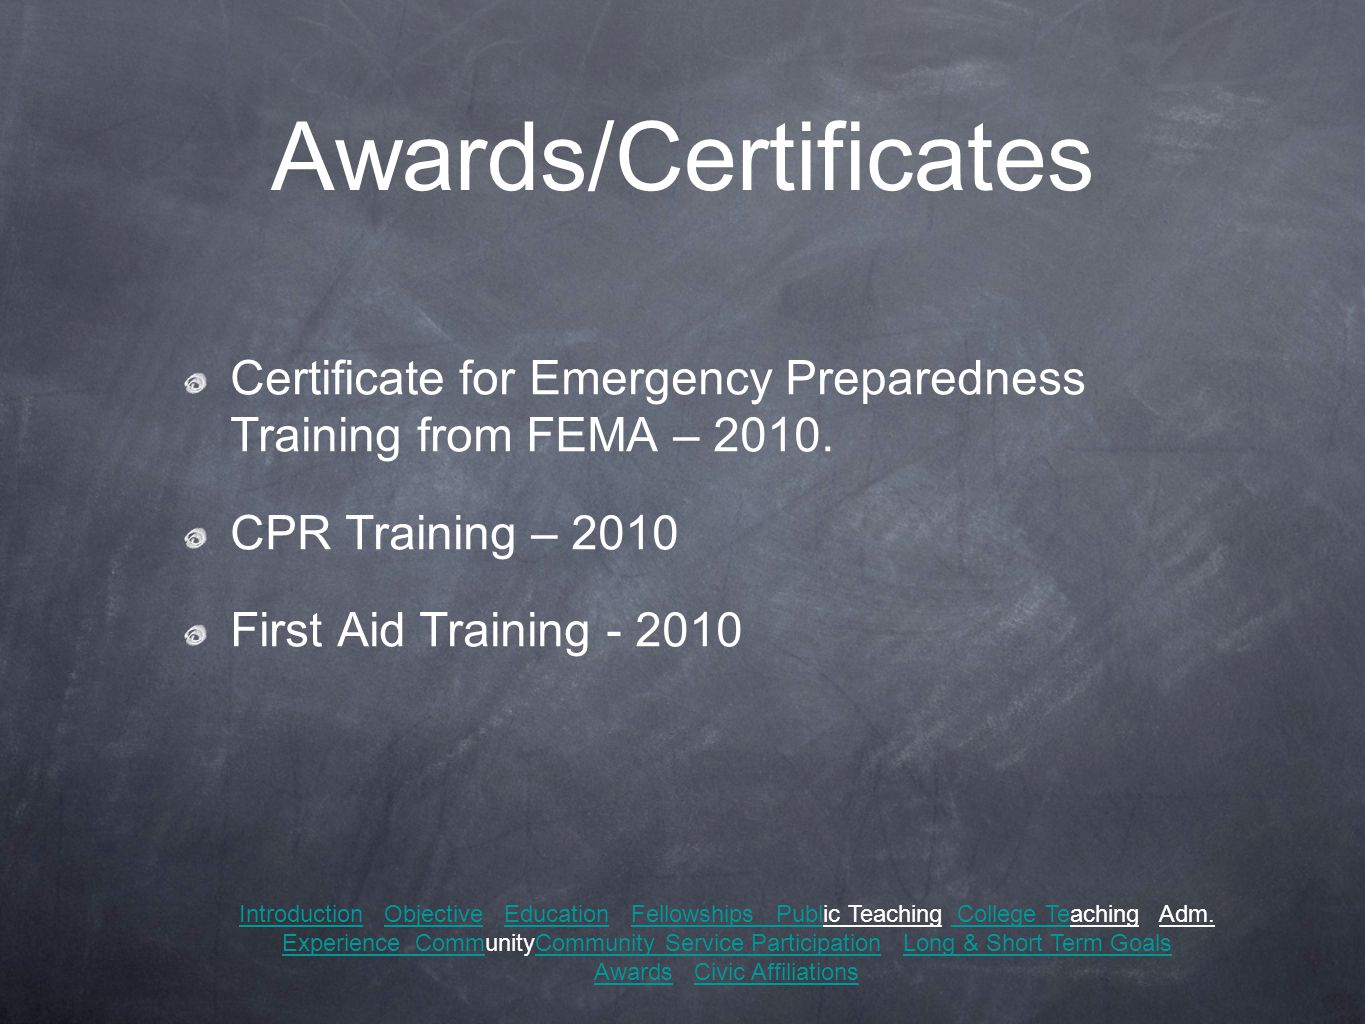 Awards/Certificates Certificate for Emergency Preparedness Training from FEMA – 2010.